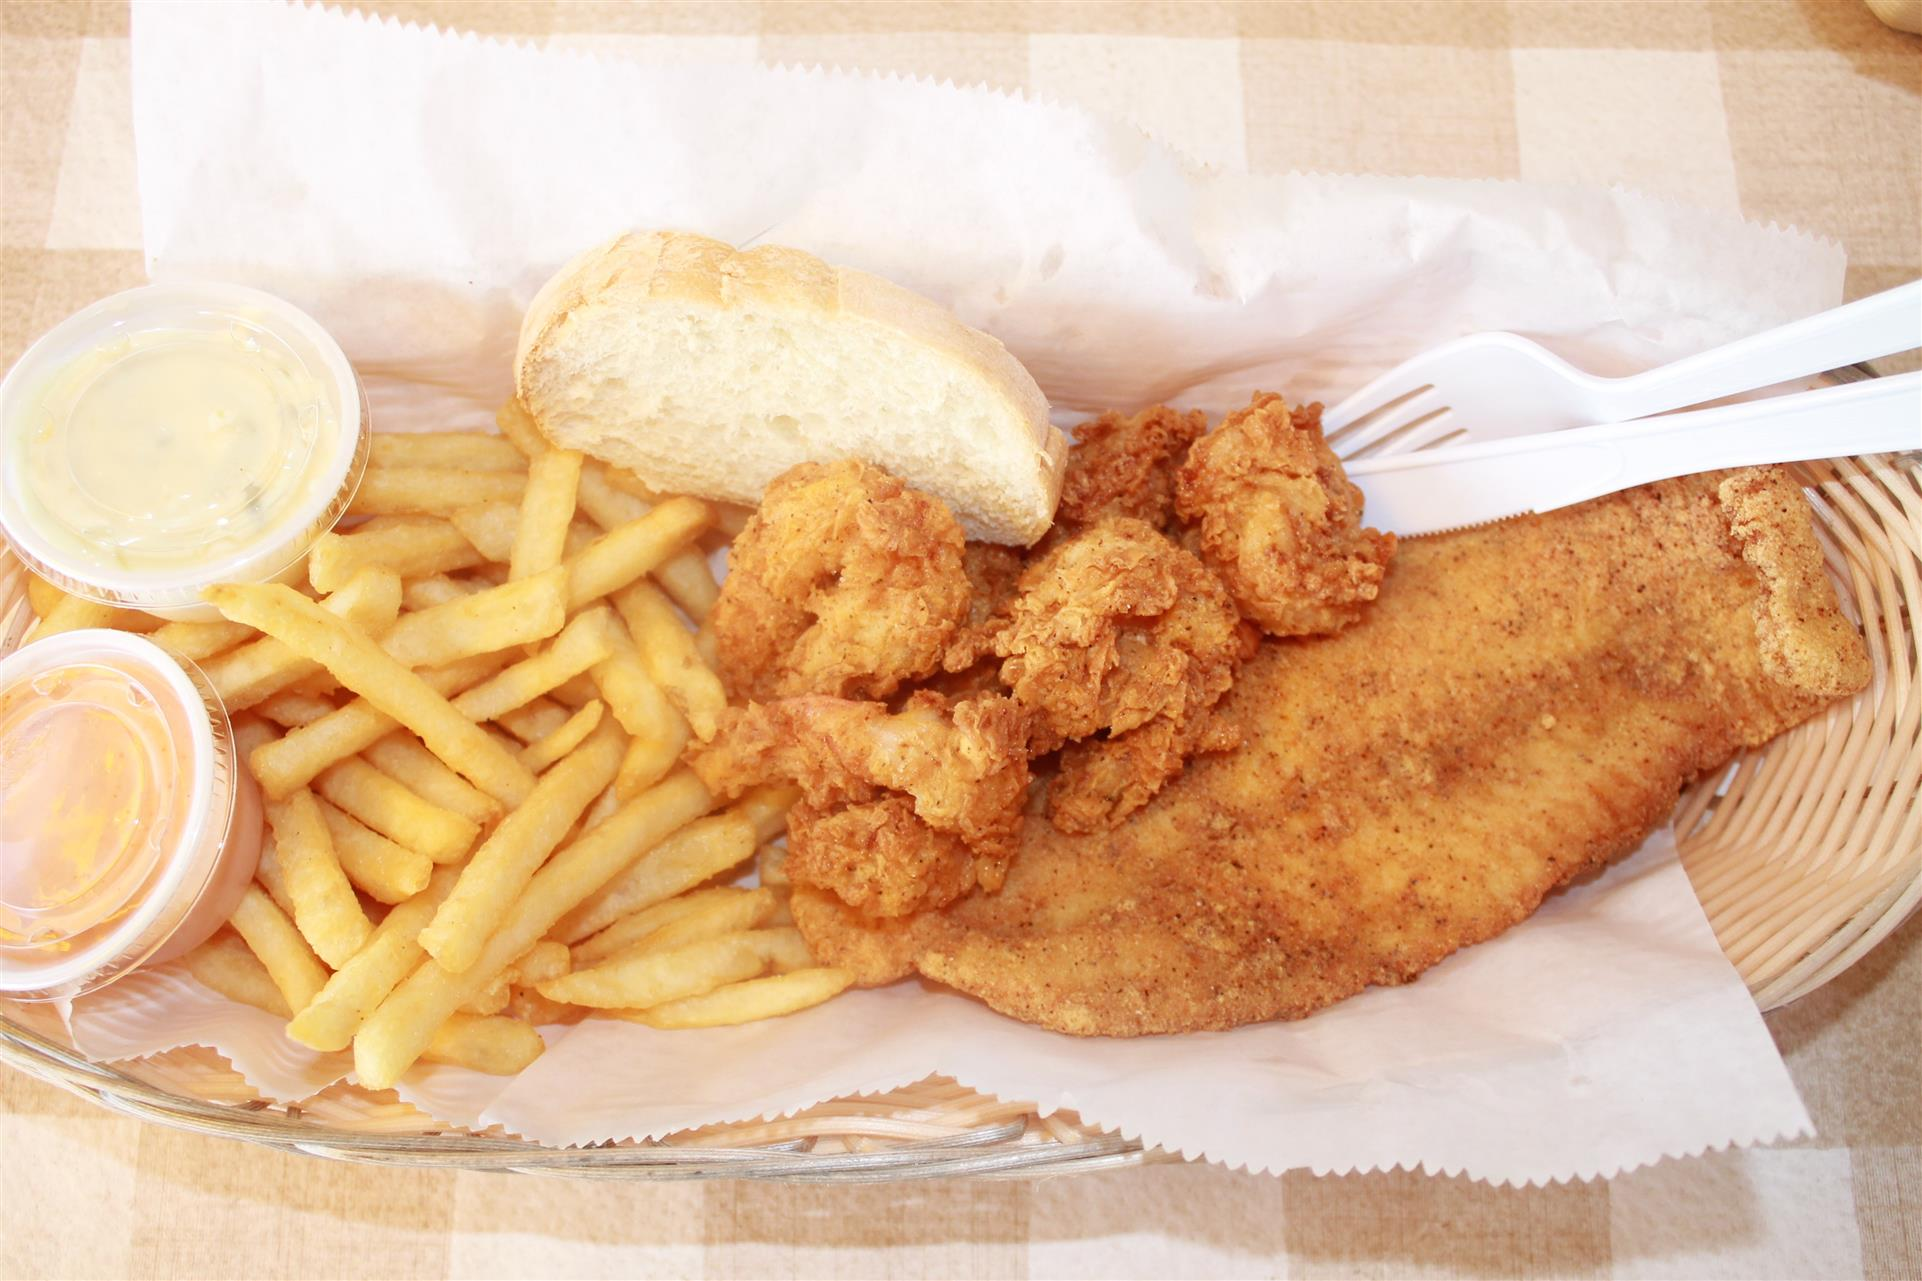 fried fish and shrimp in a basket with fries